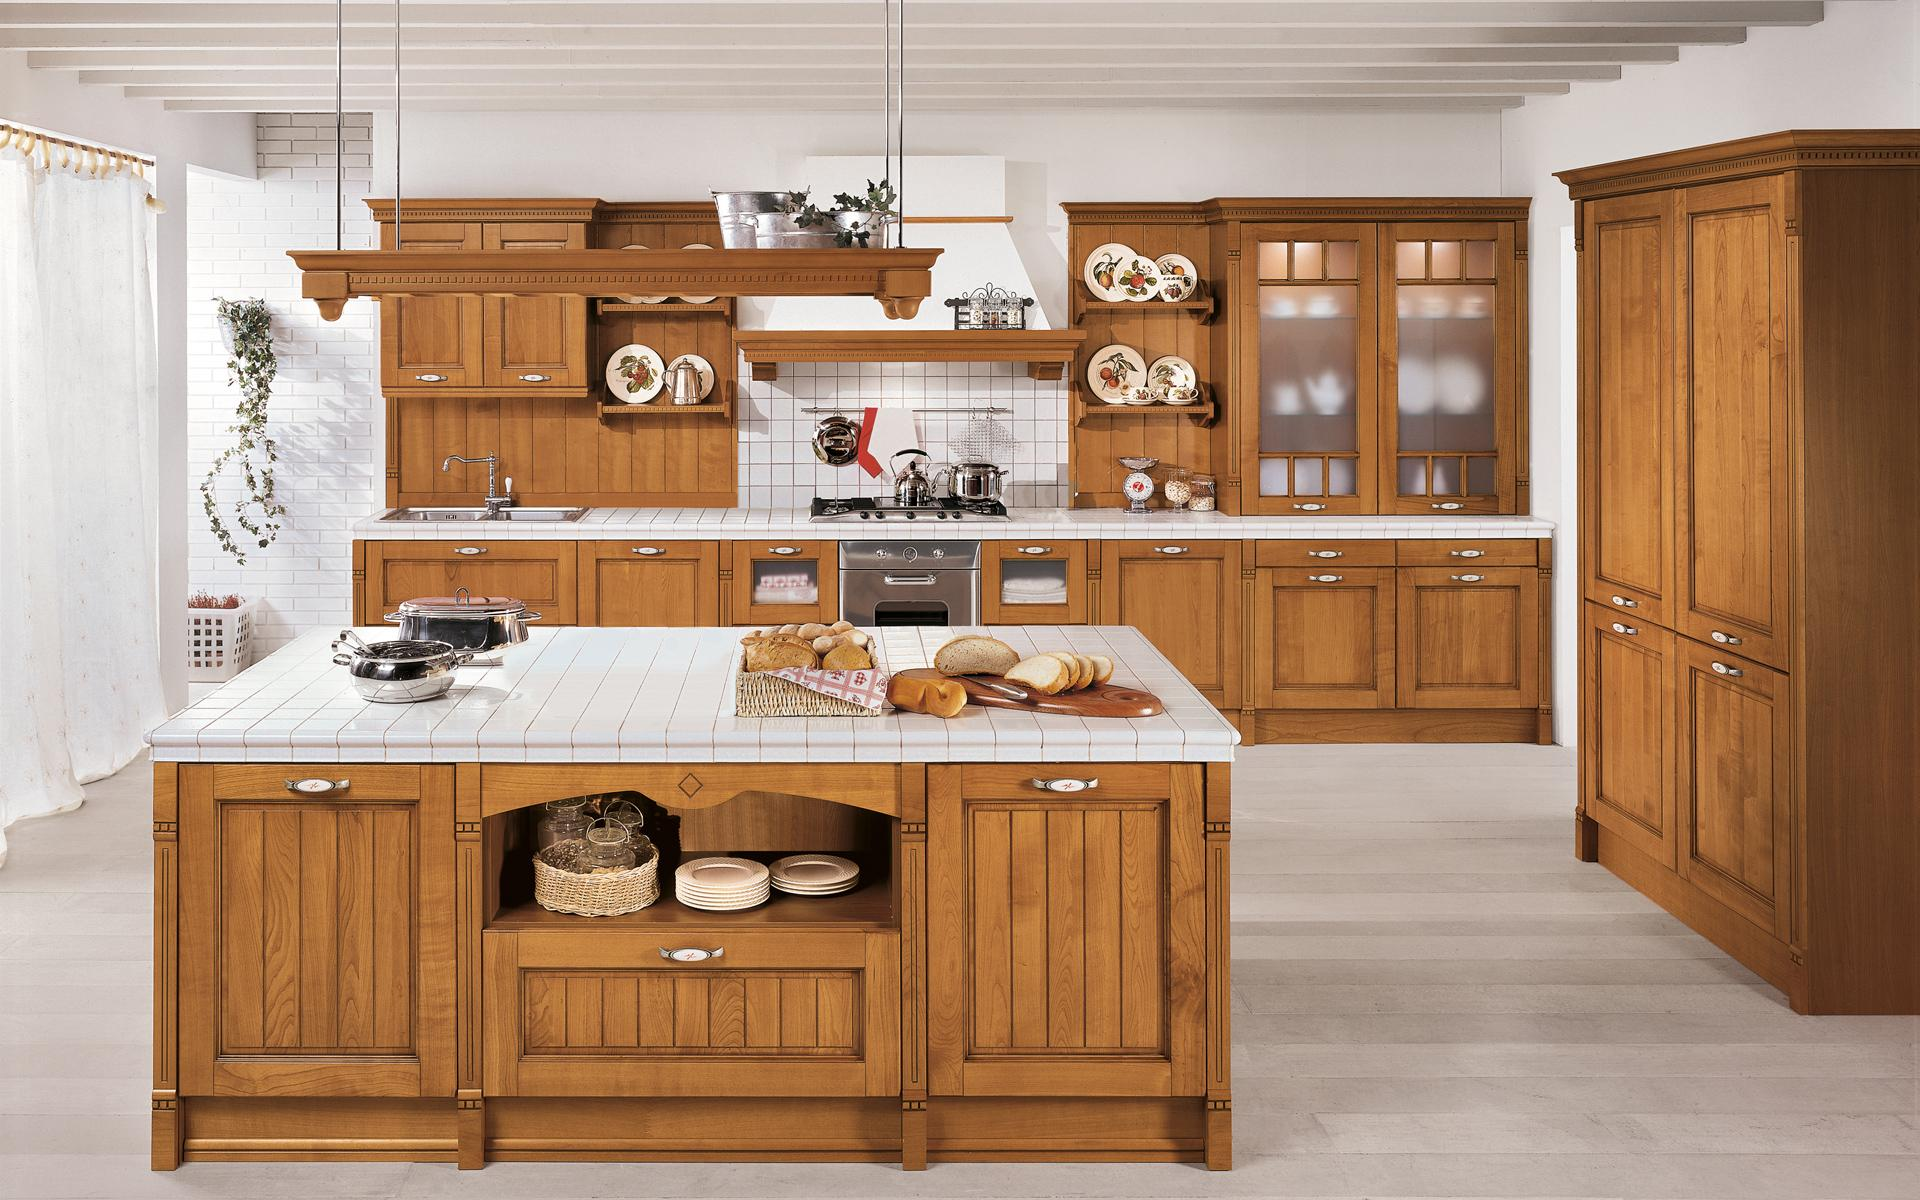 Le fablier cucine moderne great foto kb with le fablier cucine moderne gallery of mobili le - Mobili le fablier cucine ...